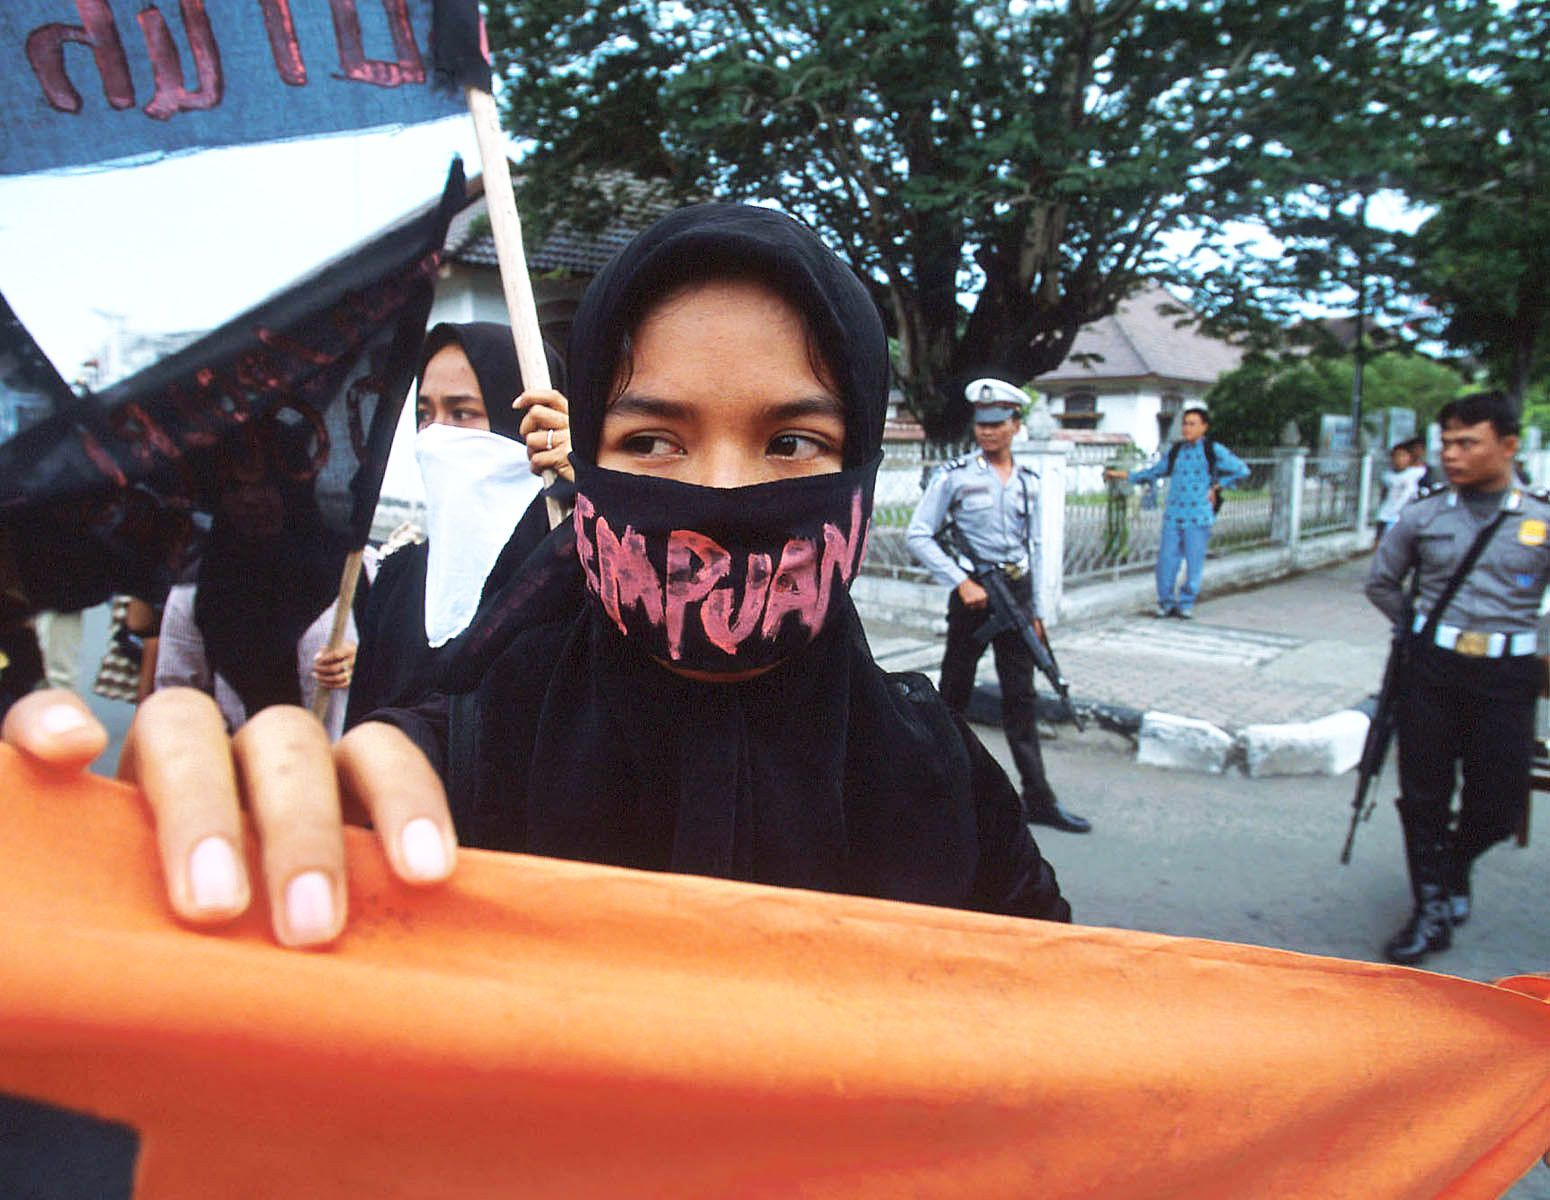 Women activists demonstrate in central Banda Aceh.They calling for more freedom and more rights.The Indonesian military broke up this peaceful demonstration. The women were beaten. Some escaped and some were arrested.